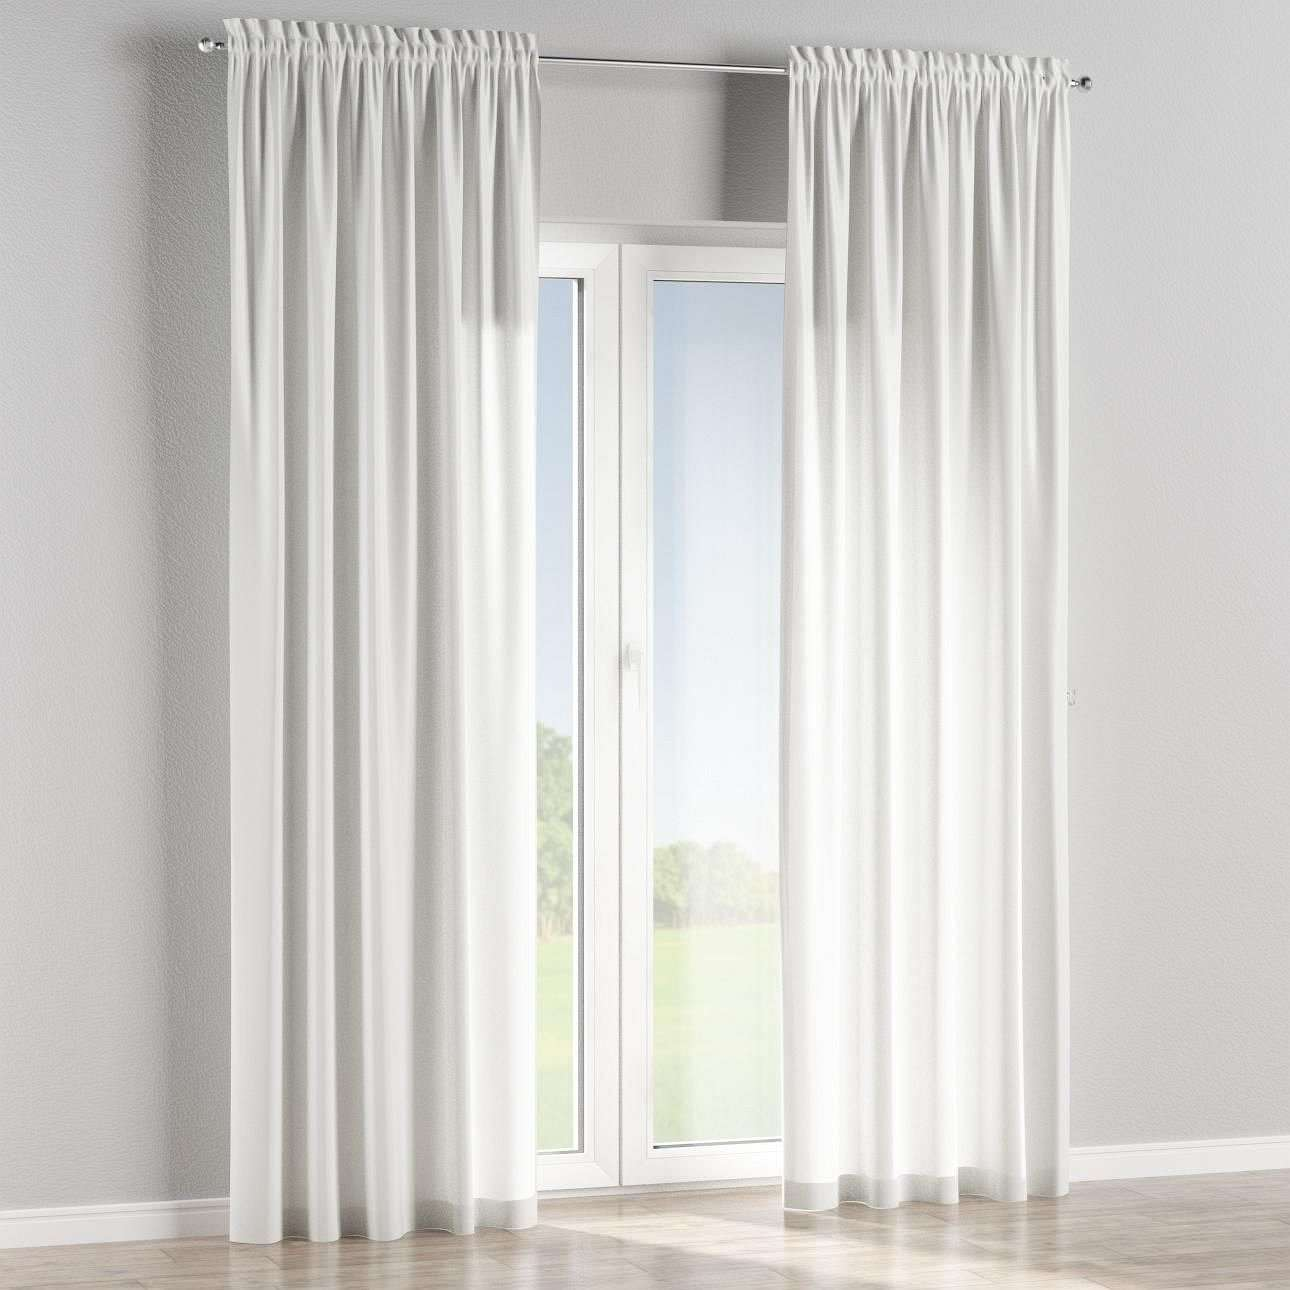 Slot and frill curtains in collection Aquarelle, fabric: 140-68